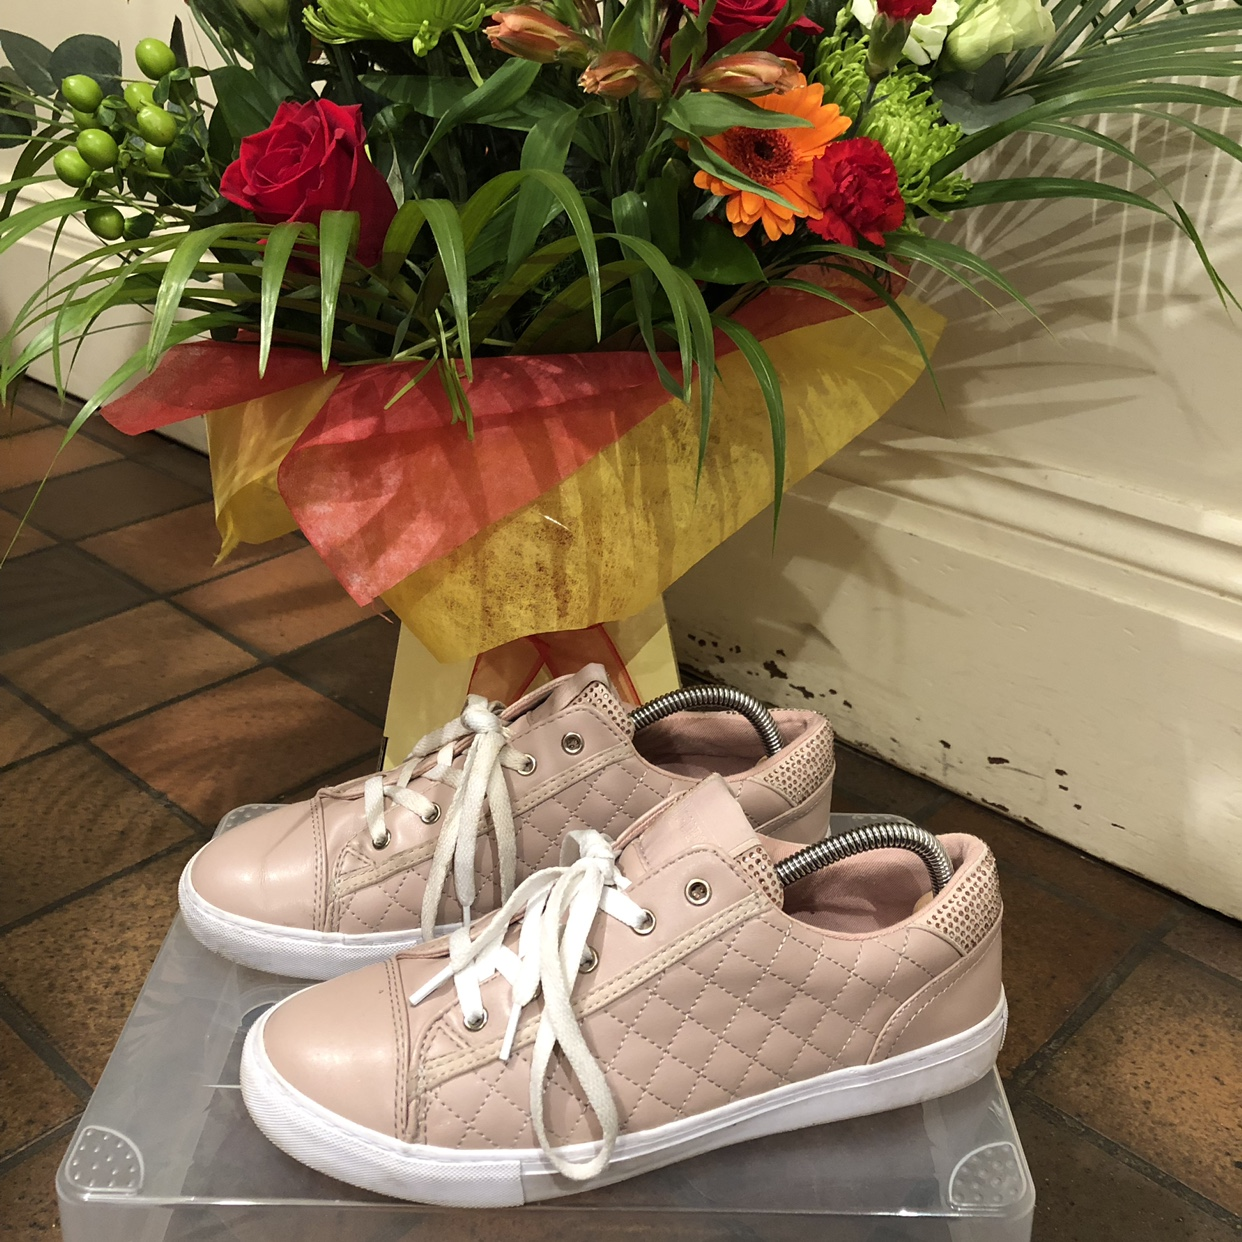 Designer Guess pink trainers with